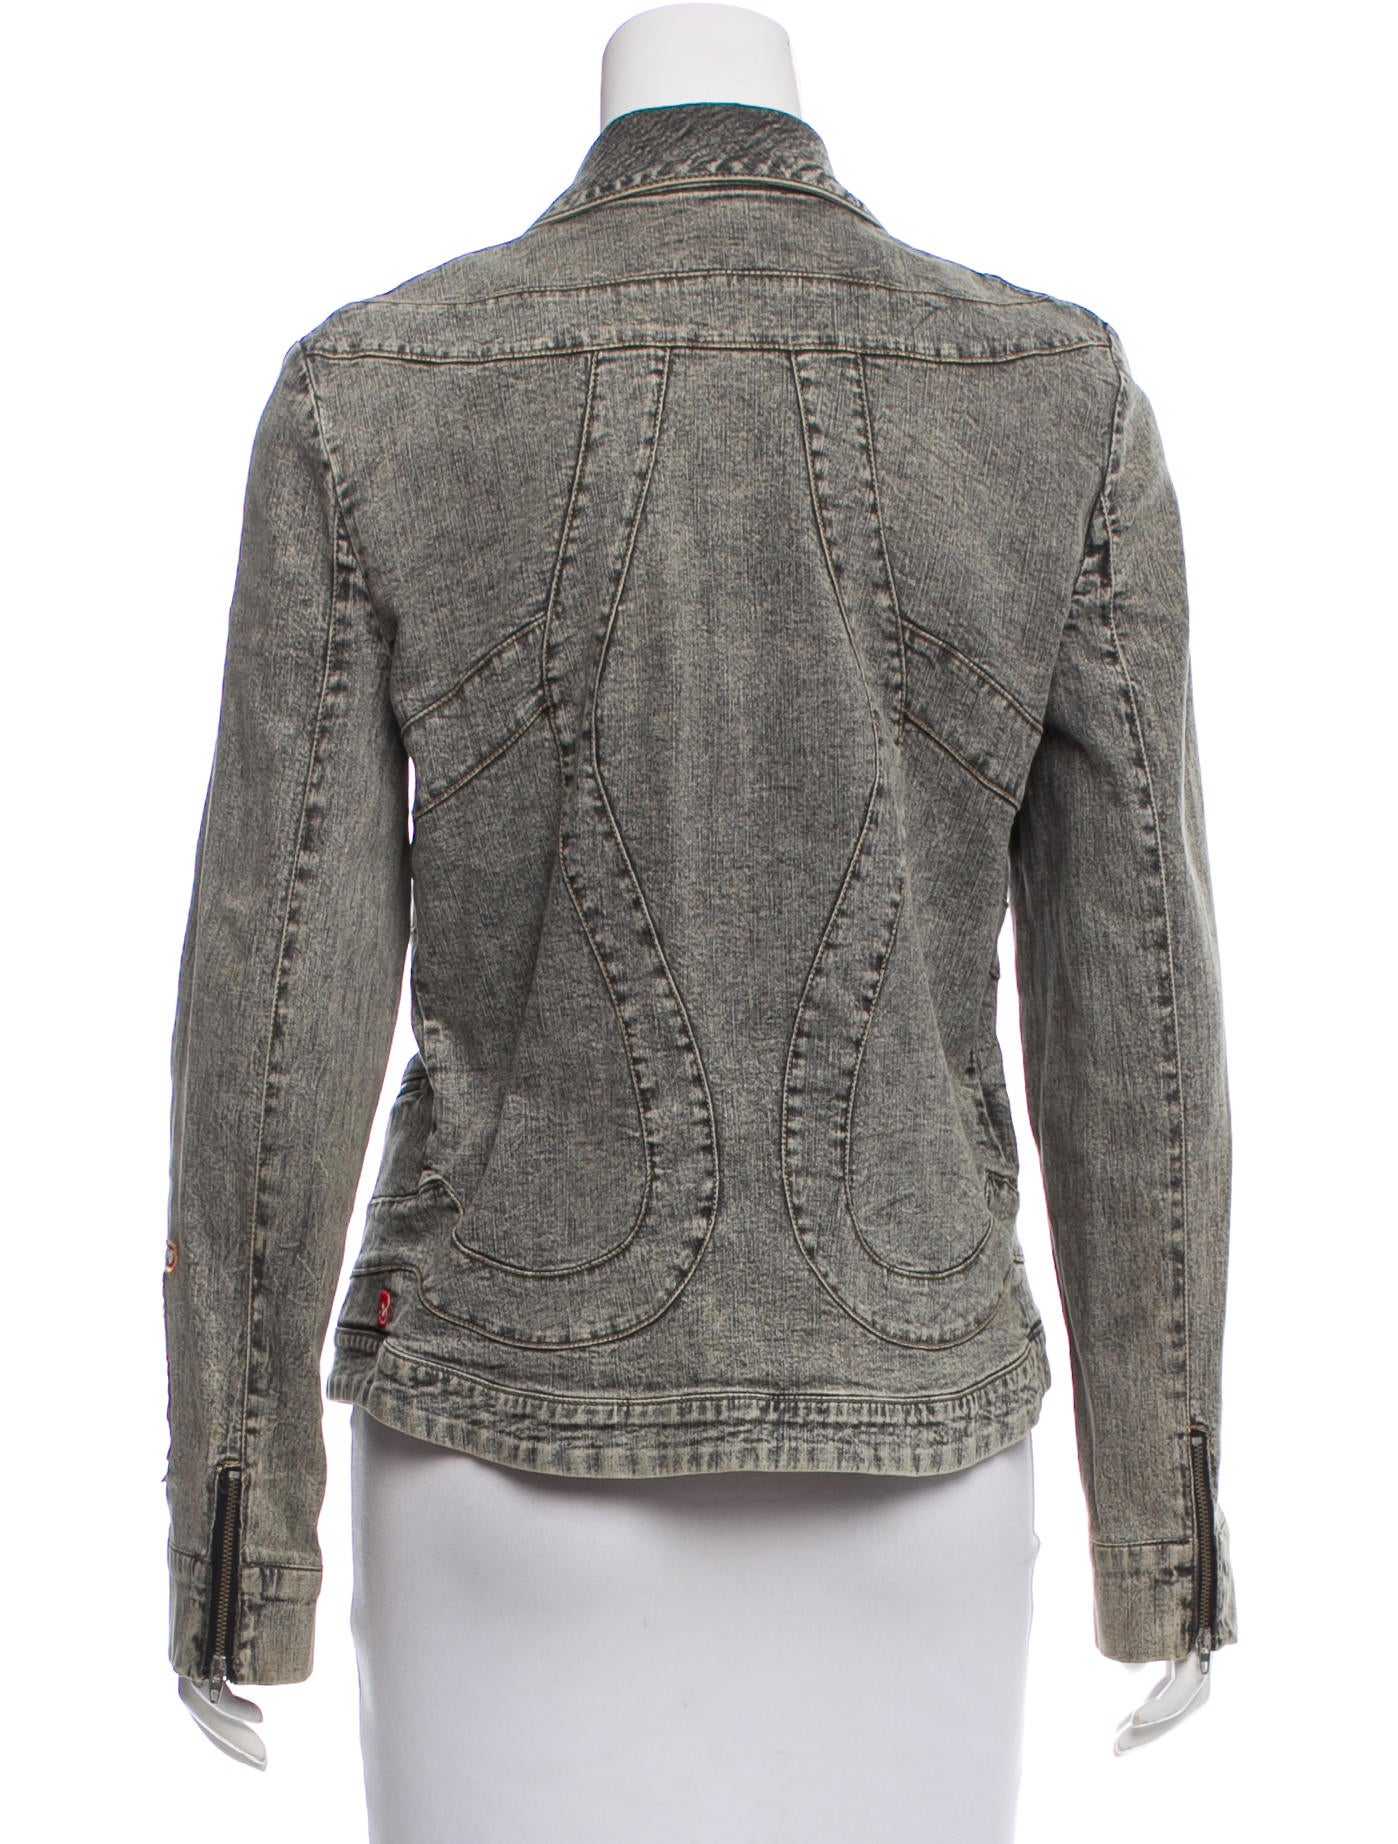 Christian Lacroix Denim Patch-Accented Jacket - Clothing - CHS22563 | The RealReal